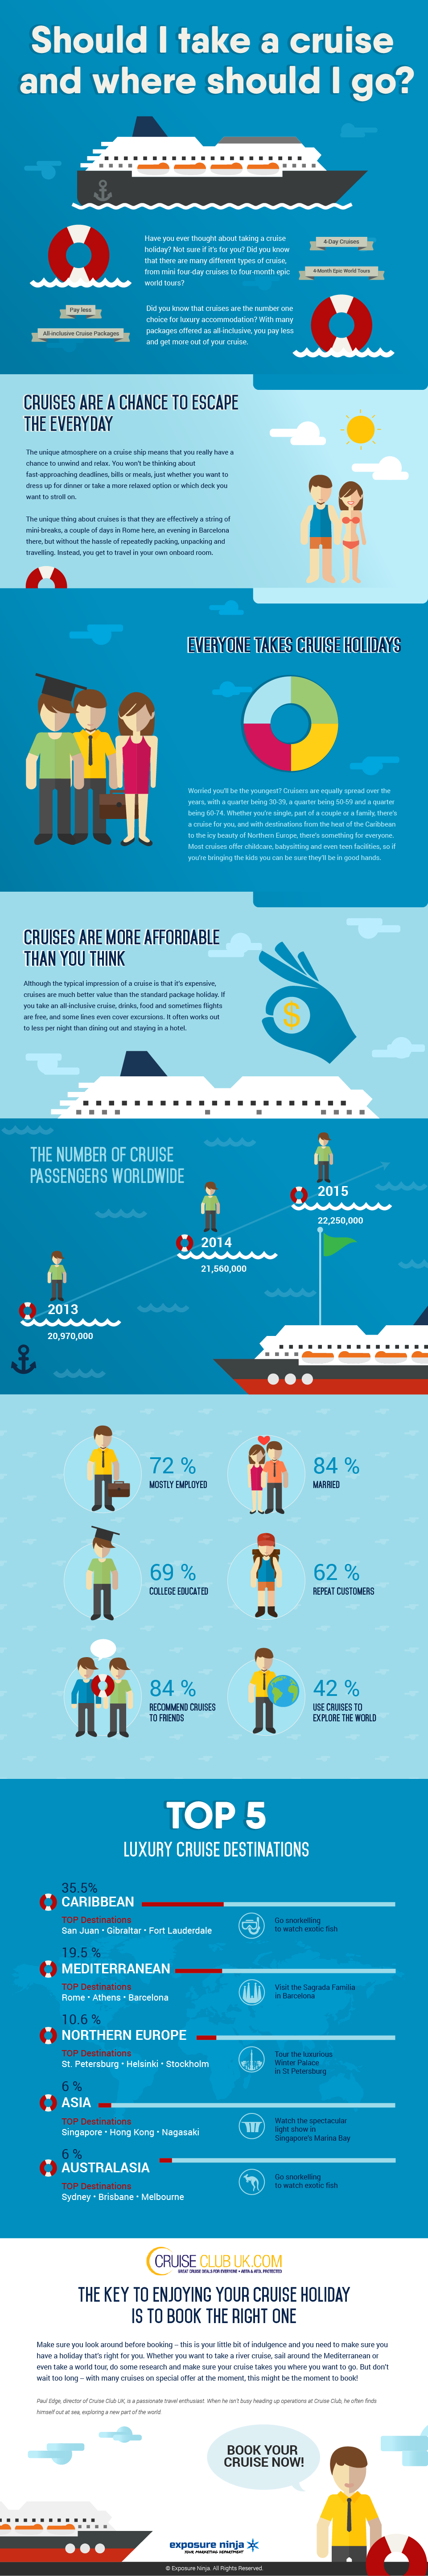 Should I Take A Cruise Infographic